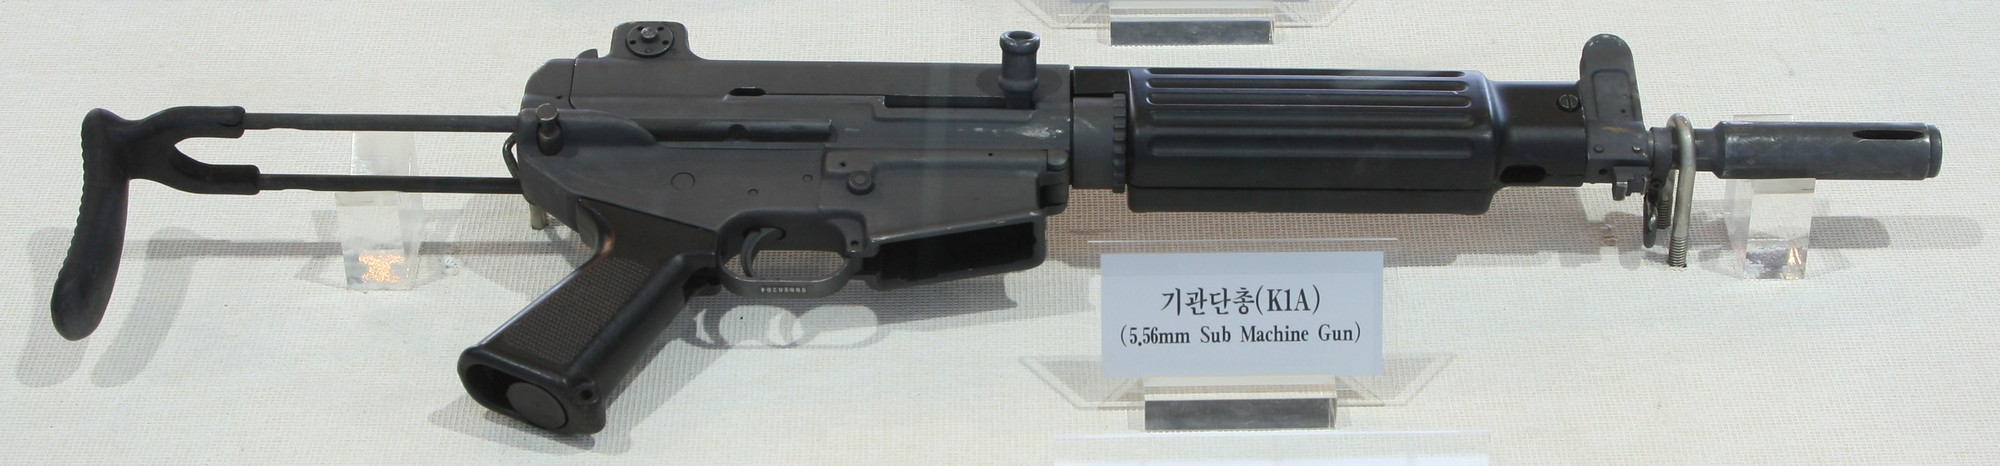 File:Daewoo K1A SMG at the War Memorial of Korea 0.jpg - Wikimedia ...